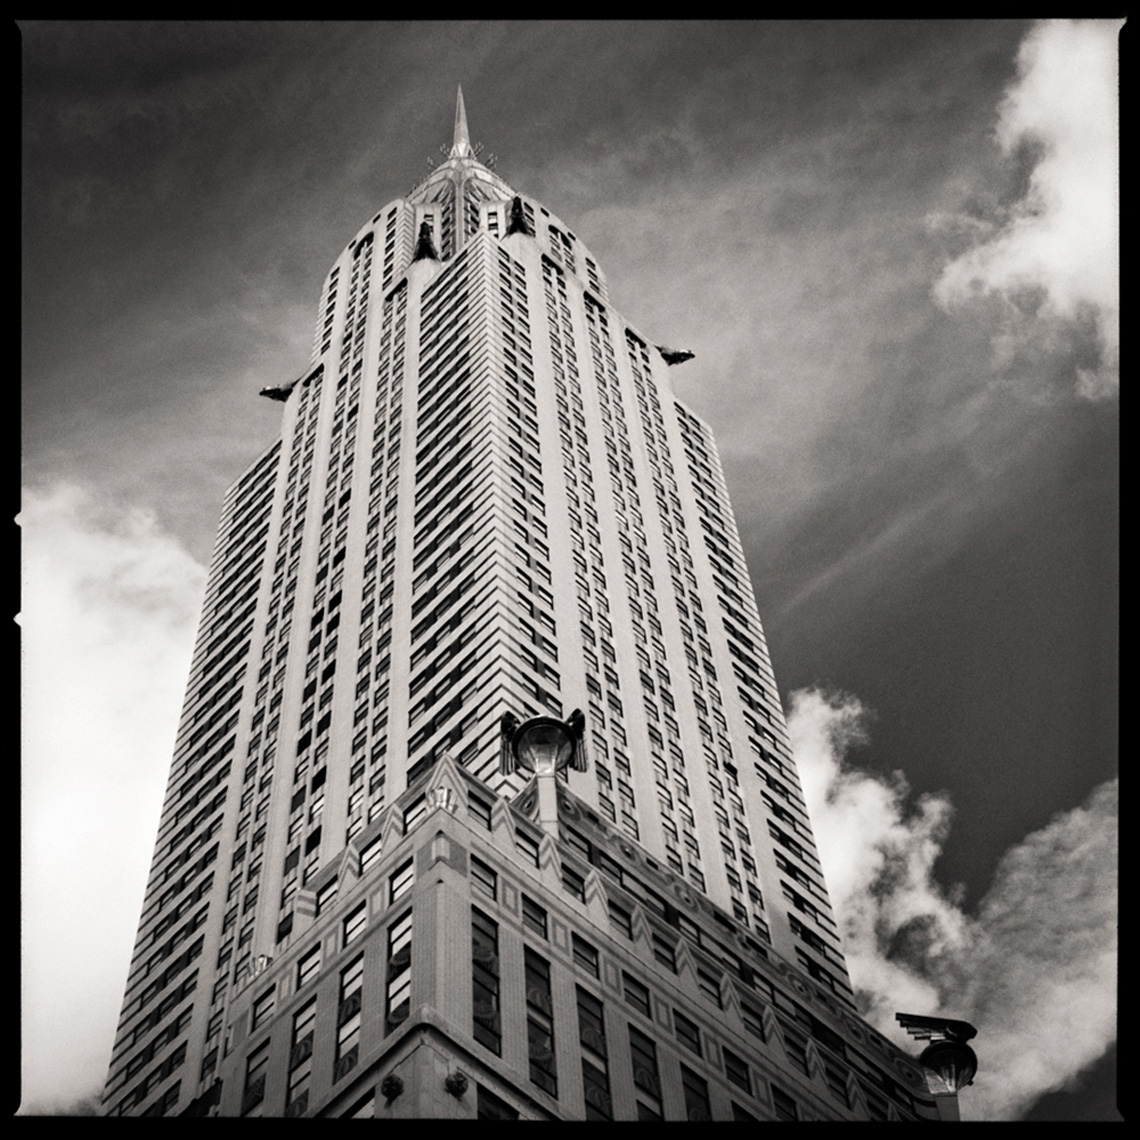 Sean Perry Photographs • The Chrysler Building, from the series Monolith